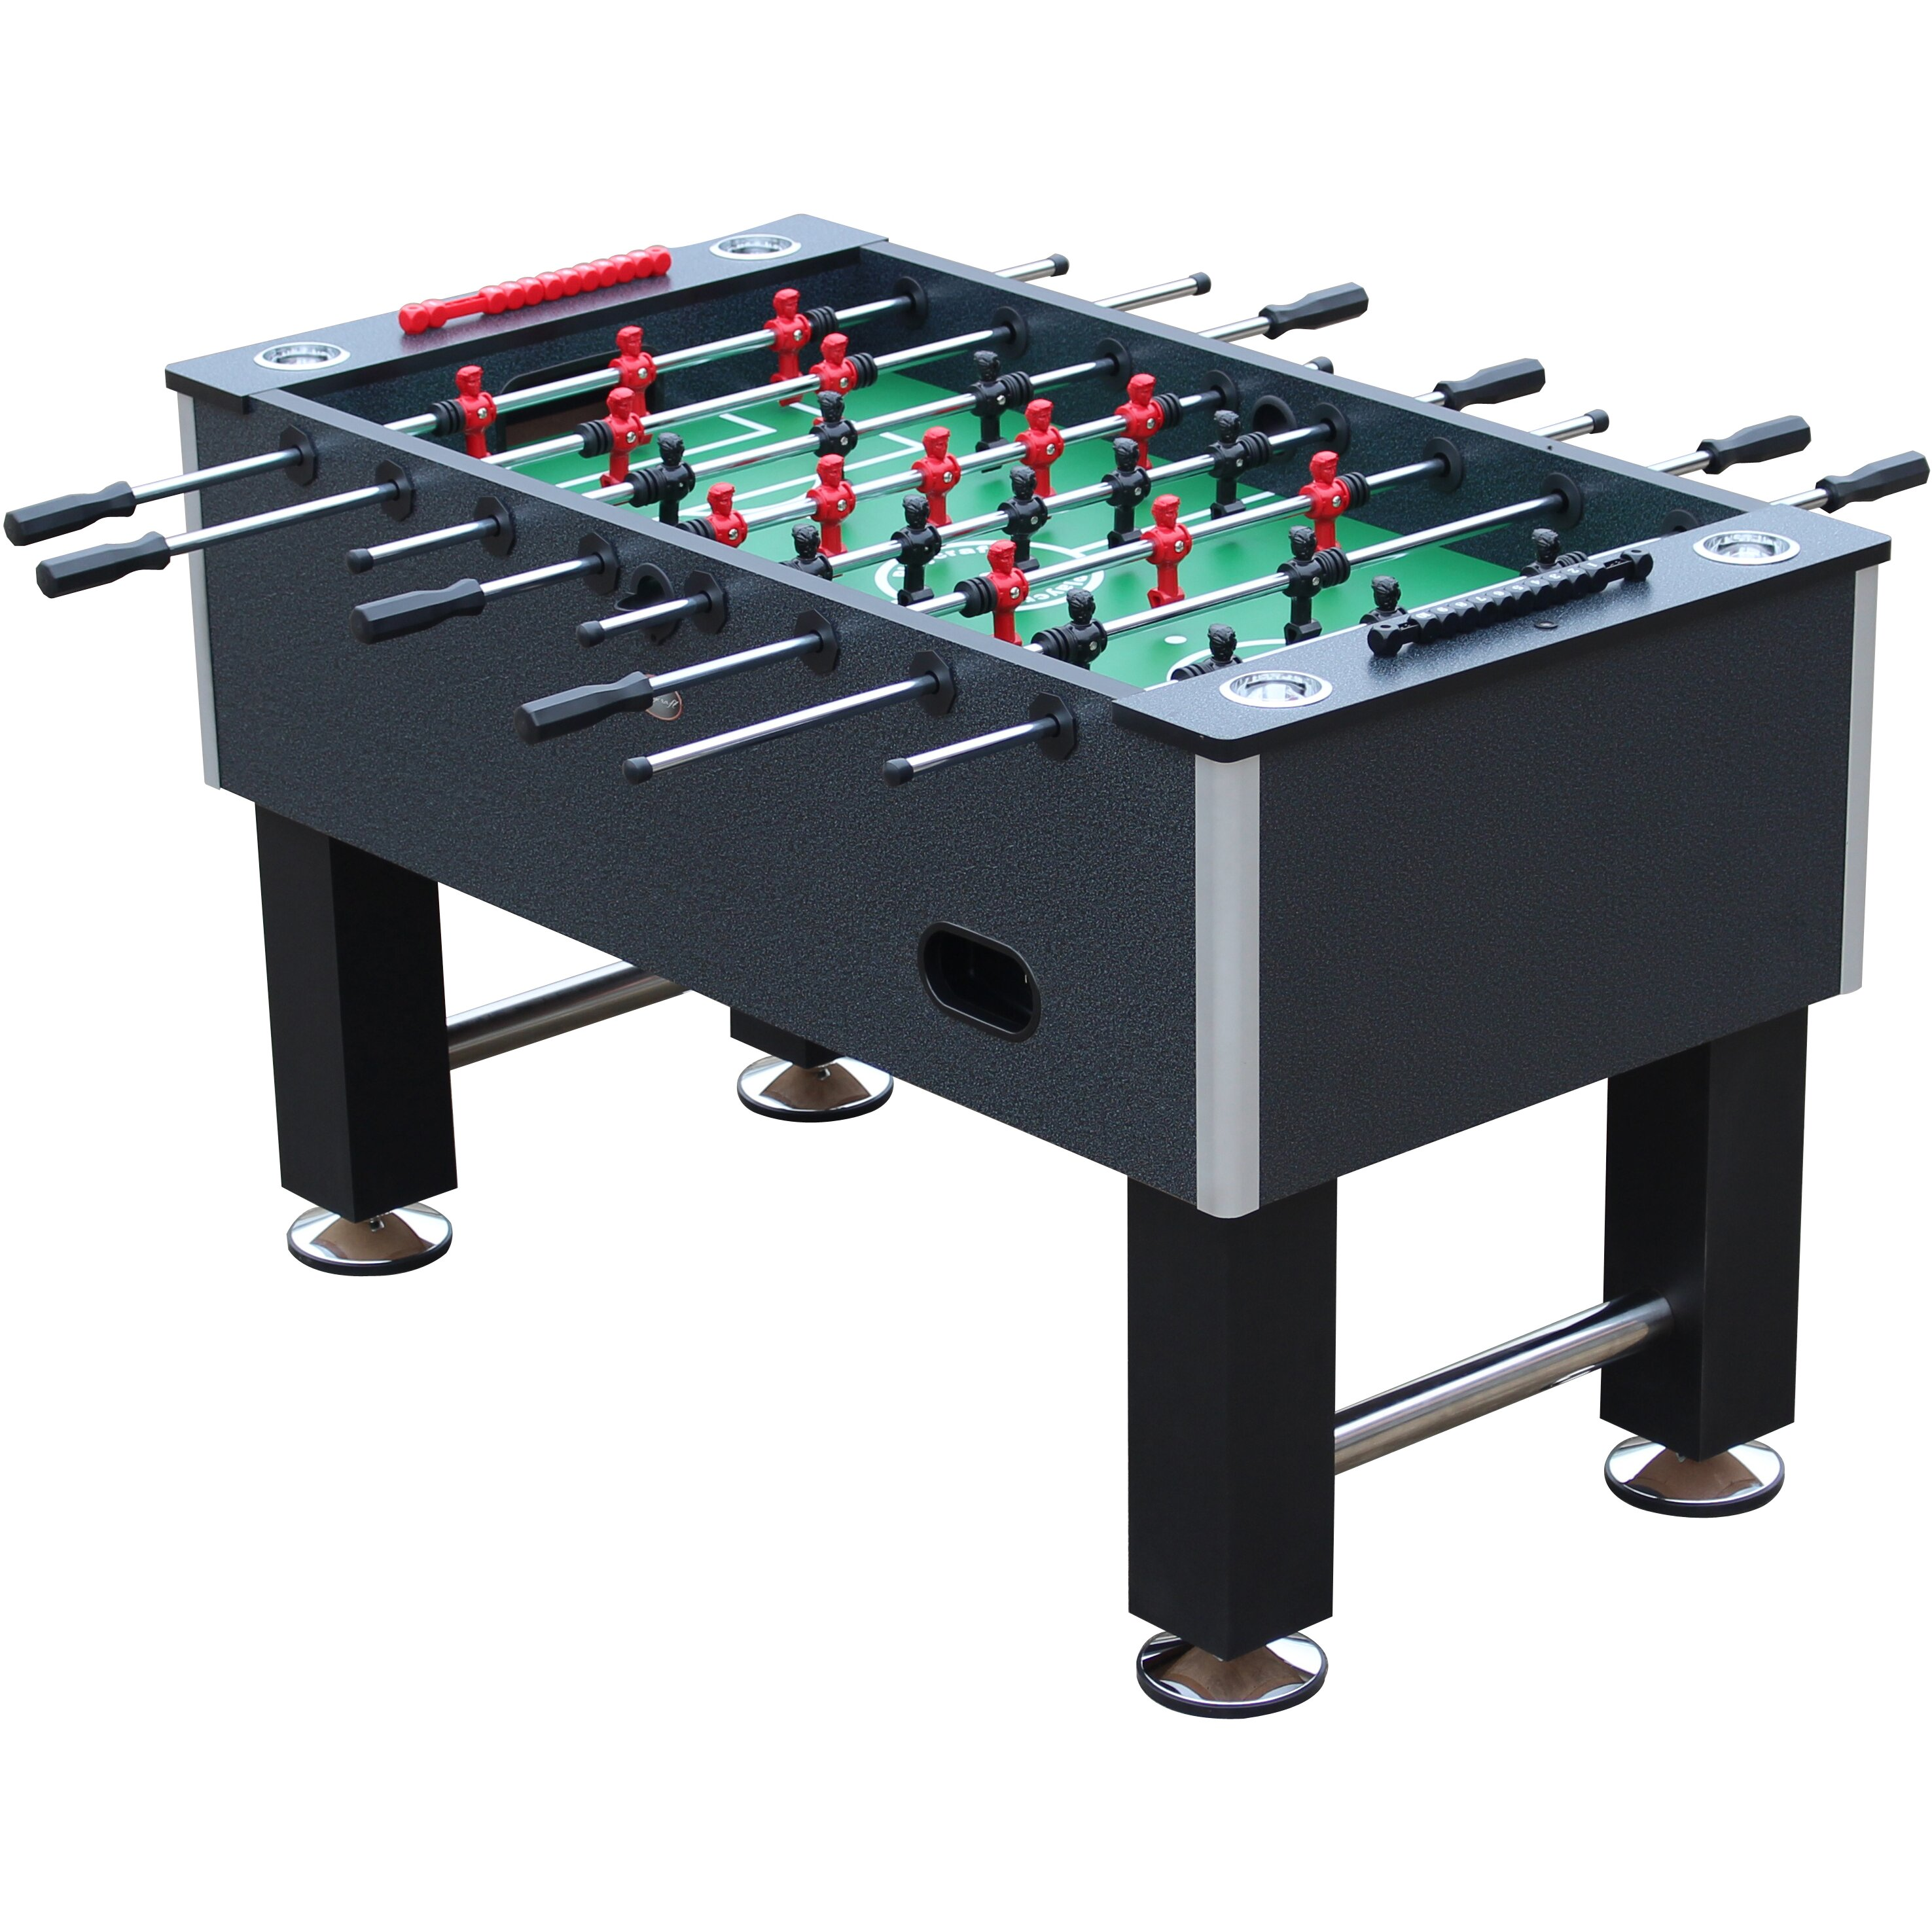 Playcraft pitch foosball game table reviews for 12 in 1 game table walmart